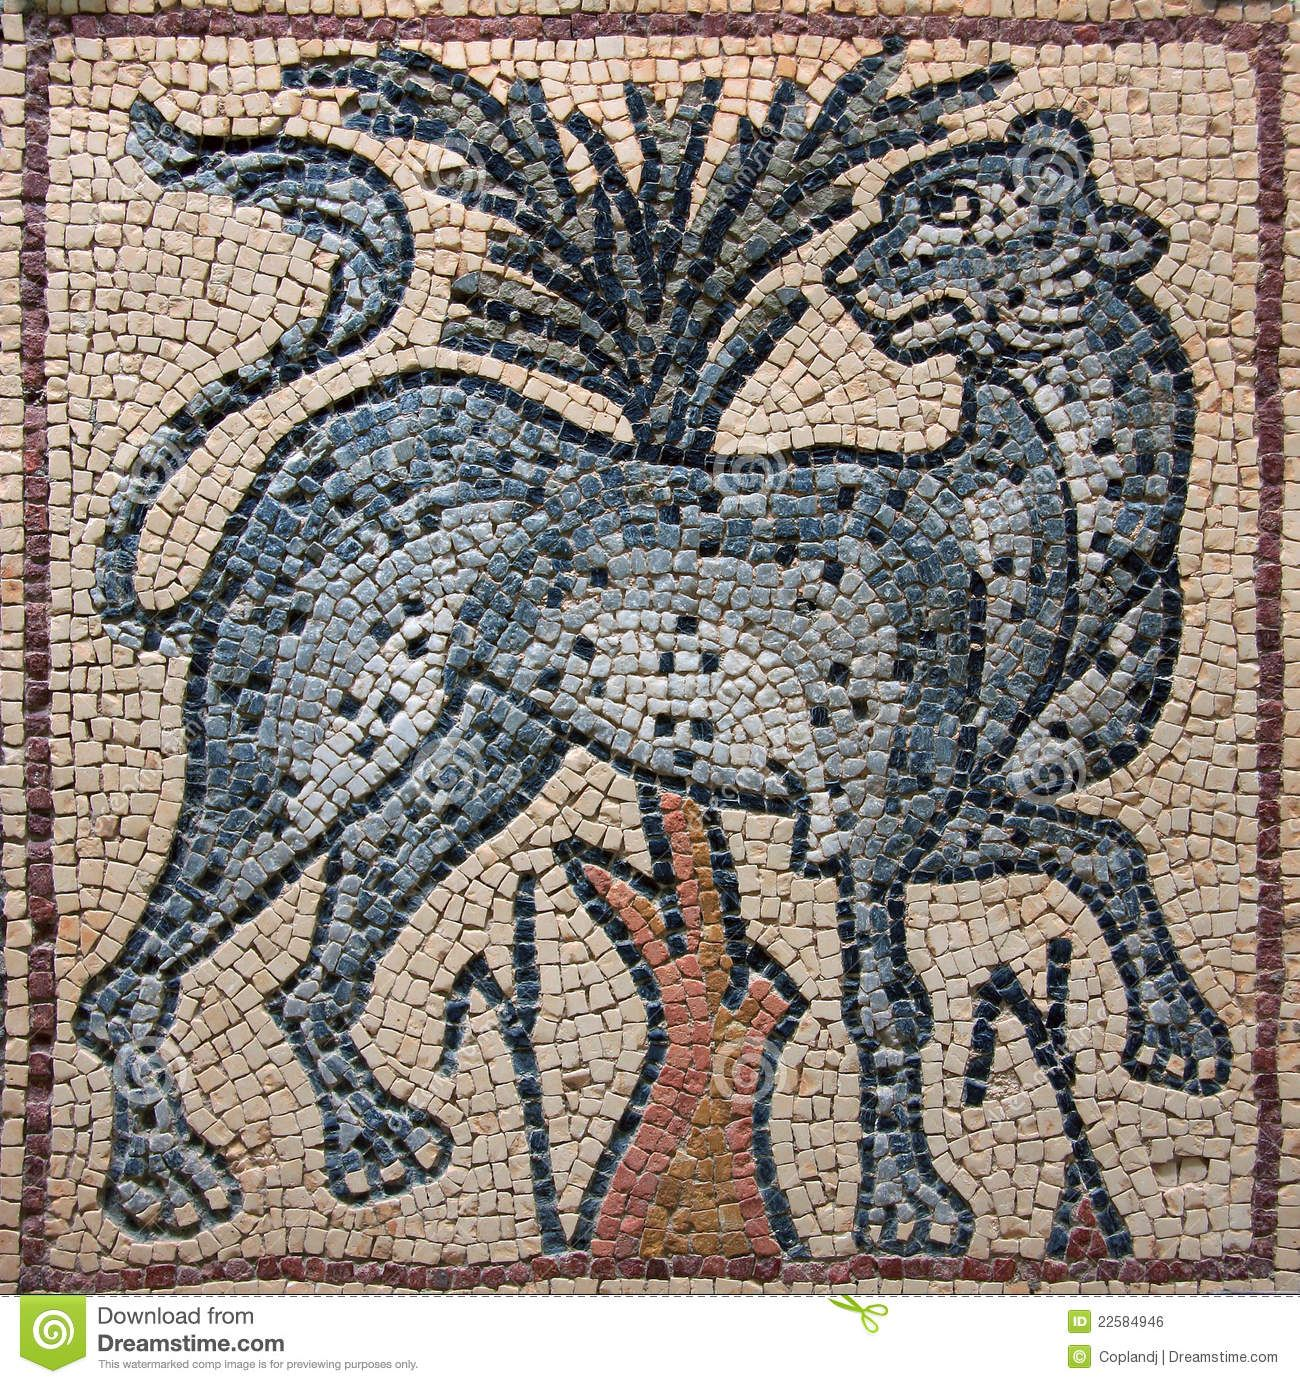 Libya Cyrenaica Byzantine Mosaic Leopard - Download From Over 46 Million High Quality Stock Photos, Images, Vectors. Sign up for FREE today. Image: 22584946